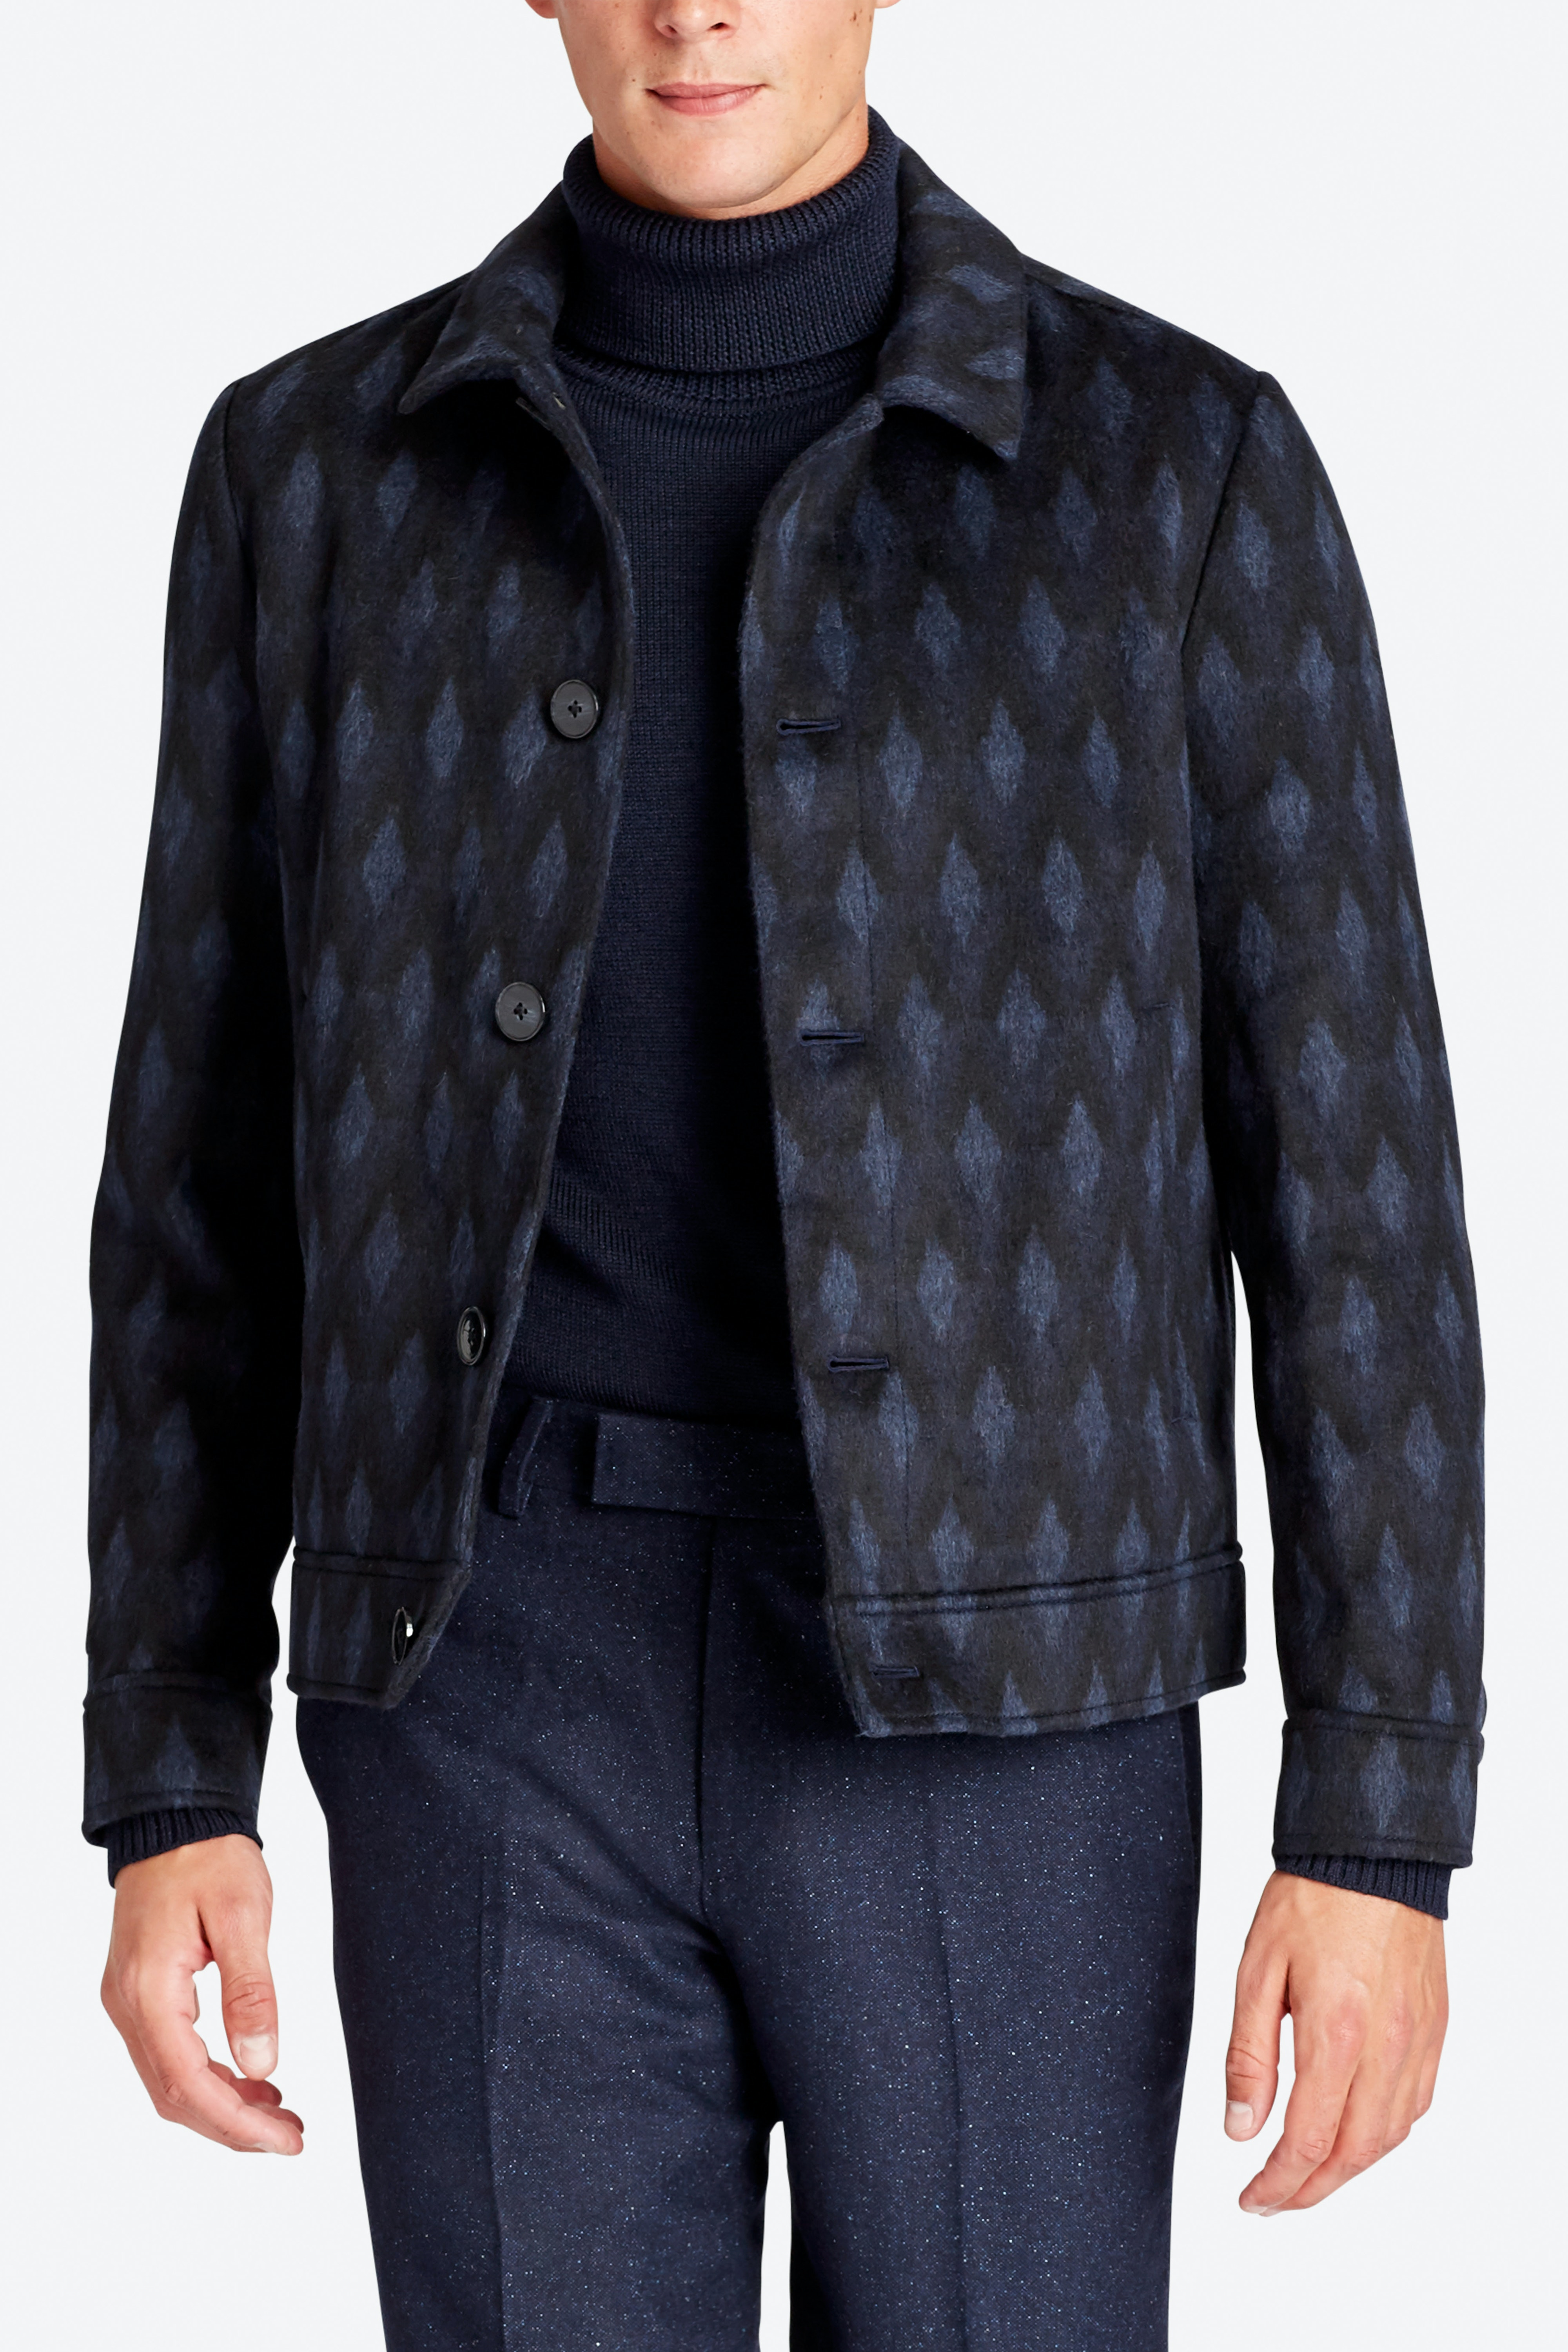 The Ikat Bomber